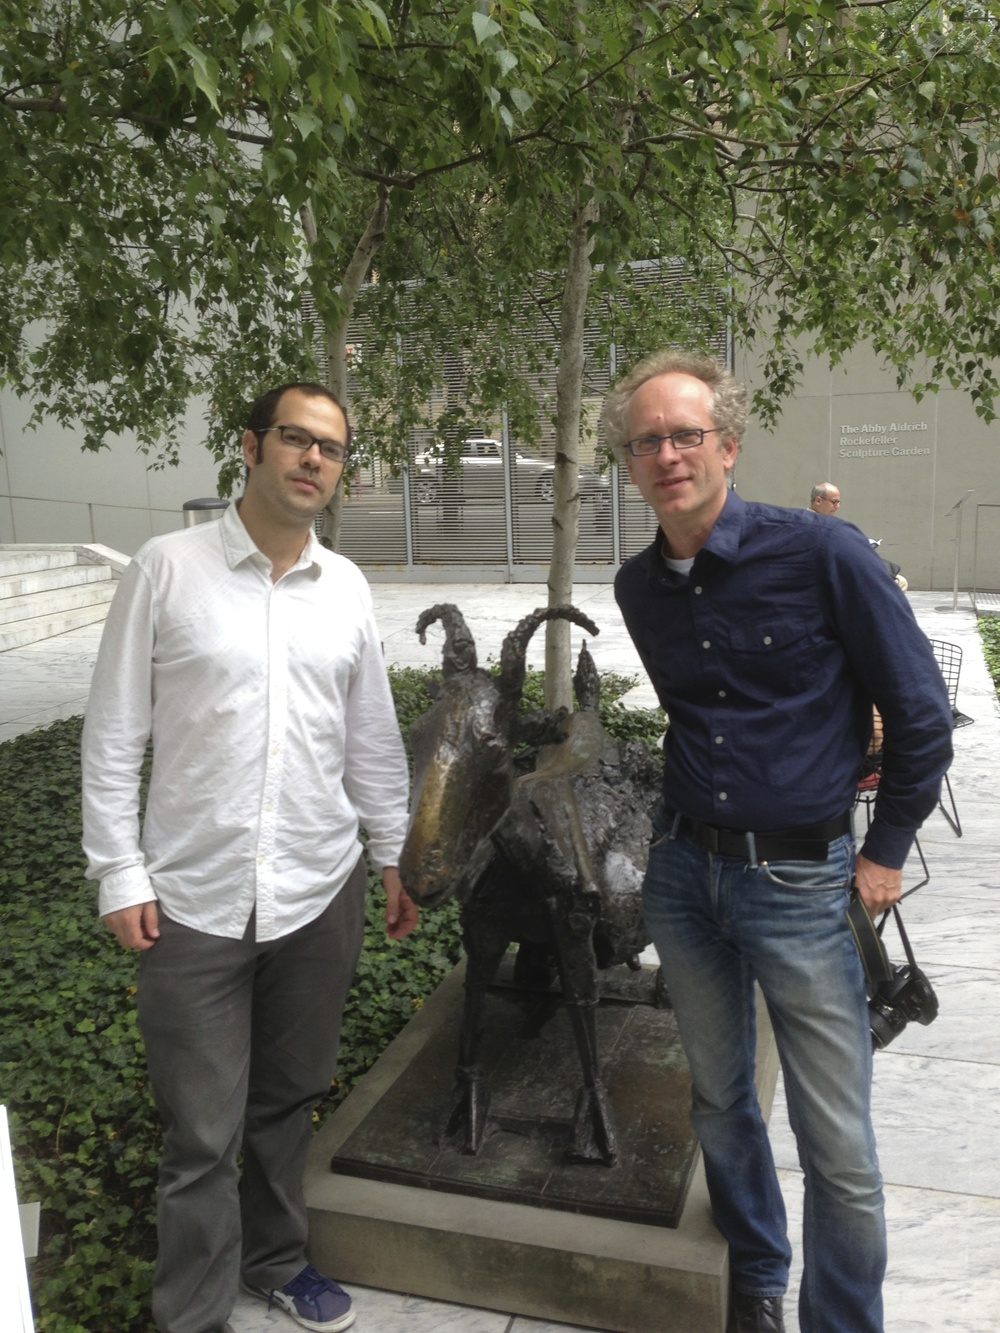 Both authors in front of a Picasso goat sculpture.